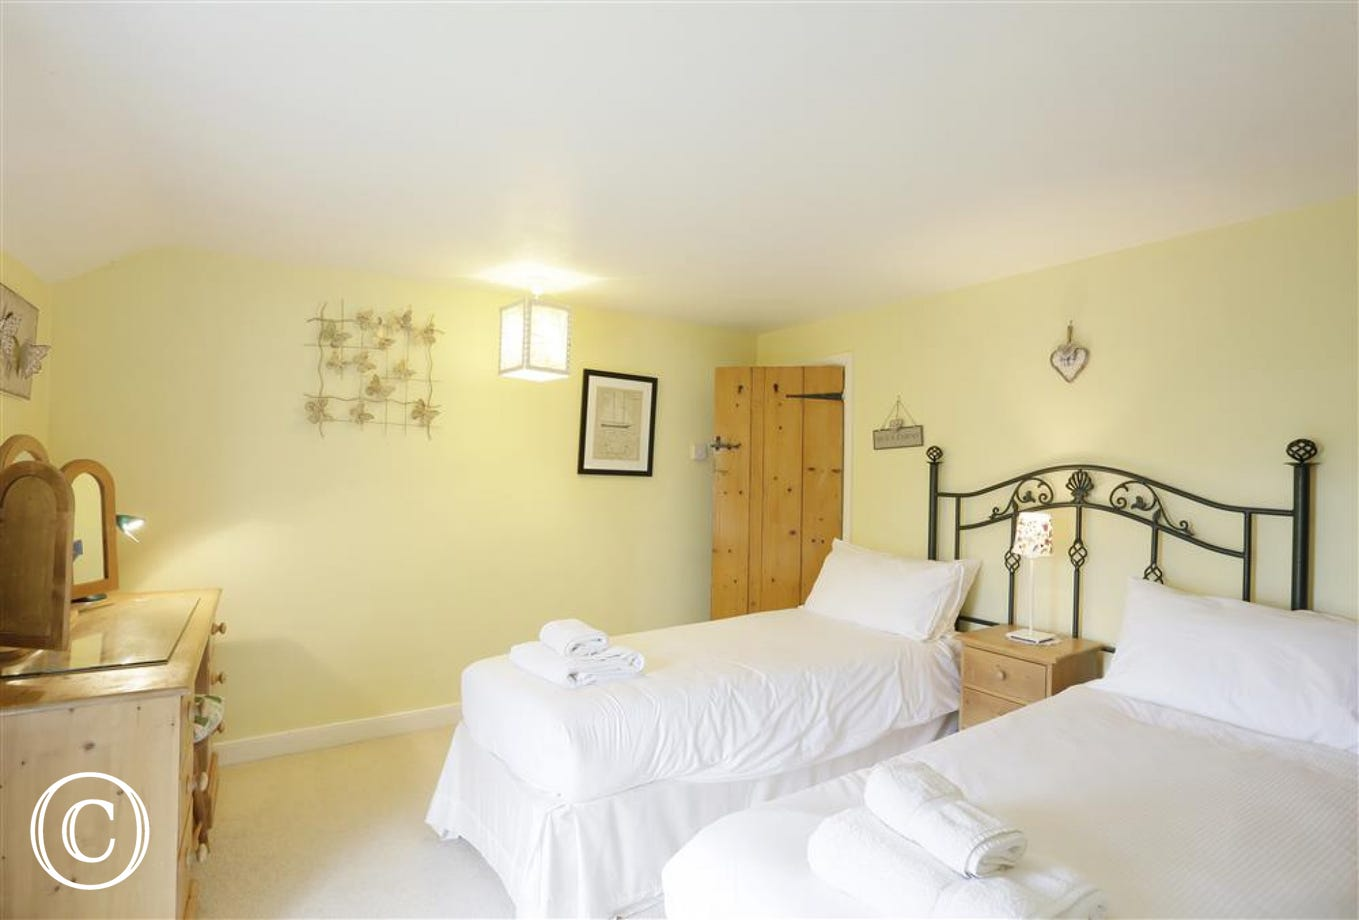 This bedroom is flexible for guests as it has twin beds which can be linked to form a king size bed - the choice is yours!